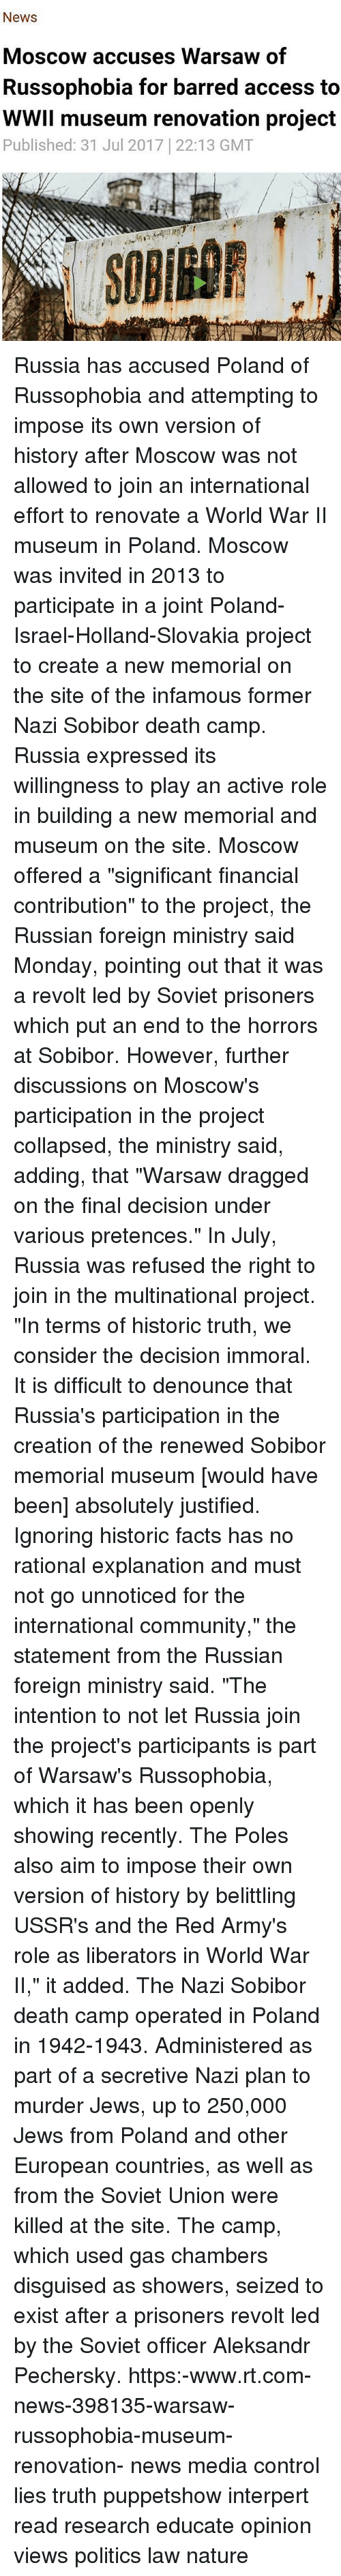 """Community, Facts, and Memes: News  Moscow accuses Warsaw of  Russophobia for barred access to  WWIl museum renovation project  Published: 31 Jul 2017 22:13 GMT Russia has accused Poland of Russophobia and attempting to impose its own version of history after Moscow was not allowed to join an international effort to renovate a World War II museum in Poland. Moscow was invited in 2013 to participate in a joint Poland-Israel-Holland-Slovakia project to create a new memorial on the site of the infamous former Nazi Sobibor death camp. Russia expressed its willingness to play an active role in building a new memorial and museum on the site. Moscow offered a """"significant financial contribution"""" to the project, the Russian foreign ministry said Monday, pointing out that it was a revolt led by Soviet prisoners which put an end to the horrors at Sobibor. However, further discussions on Moscow's participation in the project collapsed, the ministry said, adding, that """"Warsaw dragged on the final decision under various pretences."""" In July, Russia was refused the right to join in the multinational project. """"In terms of historic truth, we consider the decision immoral. It is difficult to denounce that Russia's participation in the creation of the renewed Sobibor memorial museum [would have been] absolutely justified. Ignoring historic facts has no rational explanation and must not go unnoticed for the international community,"""" the statement from the Russian foreign ministry said. """"The intention to not let Russia join the project's participants is part of Warsaw's Russophobia, which it has been openly showing recently. The Poles also aim to impose their own version of history by belittling USSR's and the Red Army's role as liberators in World War II,"""" it added. The Nazi Sobibor death camp operated in Poland in 1942-1943. Administered as part of a secretive Nazi plan to murder Jews, up to 250,000 Jews from Poland and other European countries, as well as from the Soviet Union were ki"""